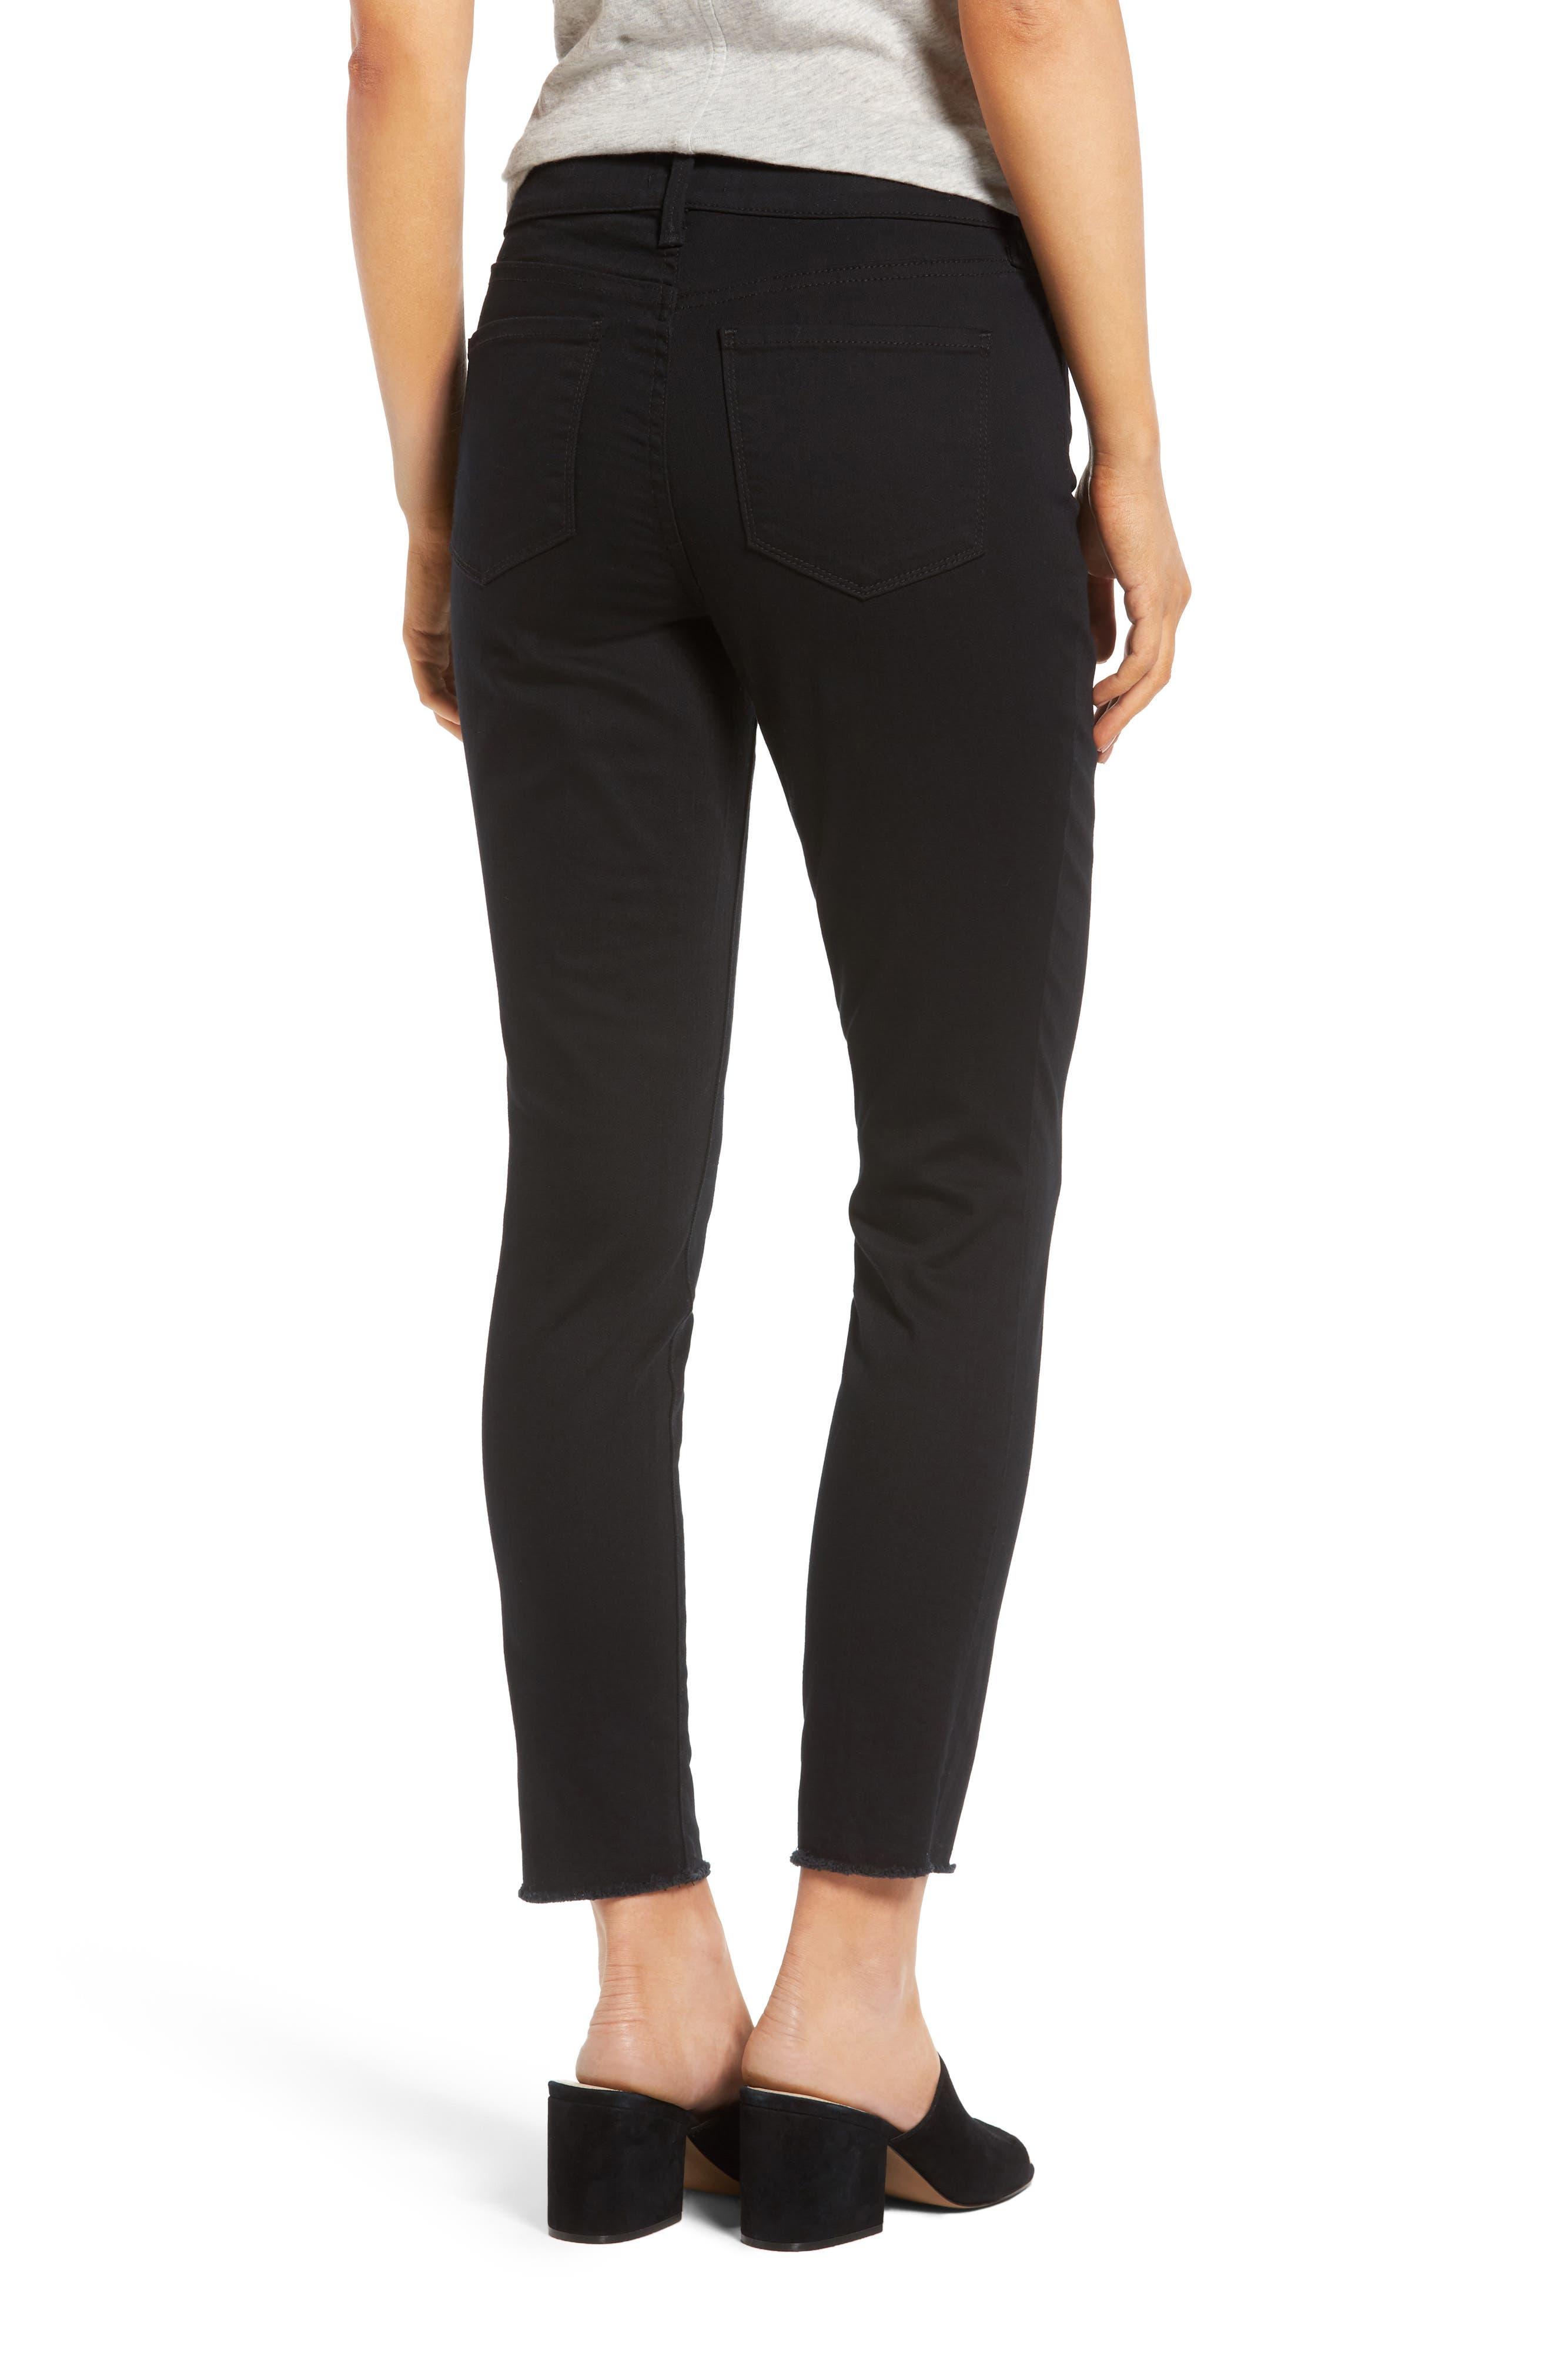 Alina Frayed Stretch Twill Ankle Pants,                             Alternate thumbnail 2, color,                             001